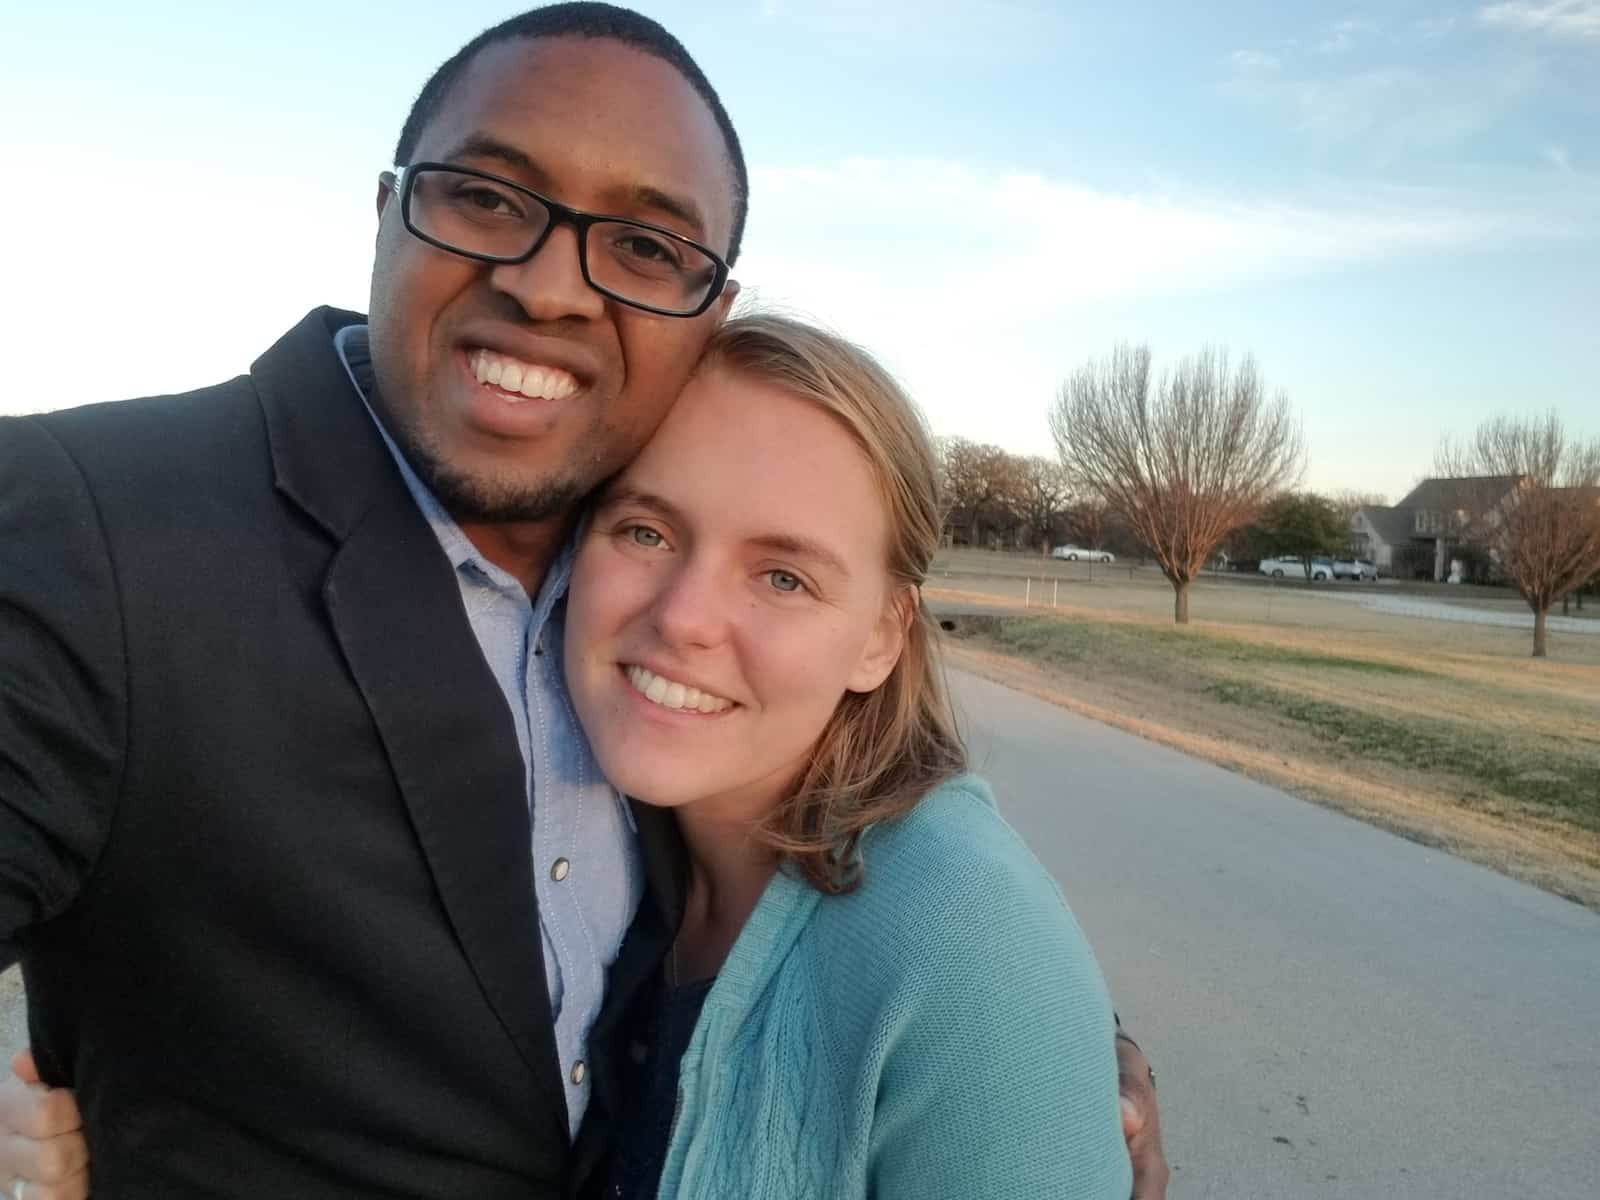 A man in a black suit coat and glasses smiles with his arm around a woman with blonde hair wearing a green sweater.